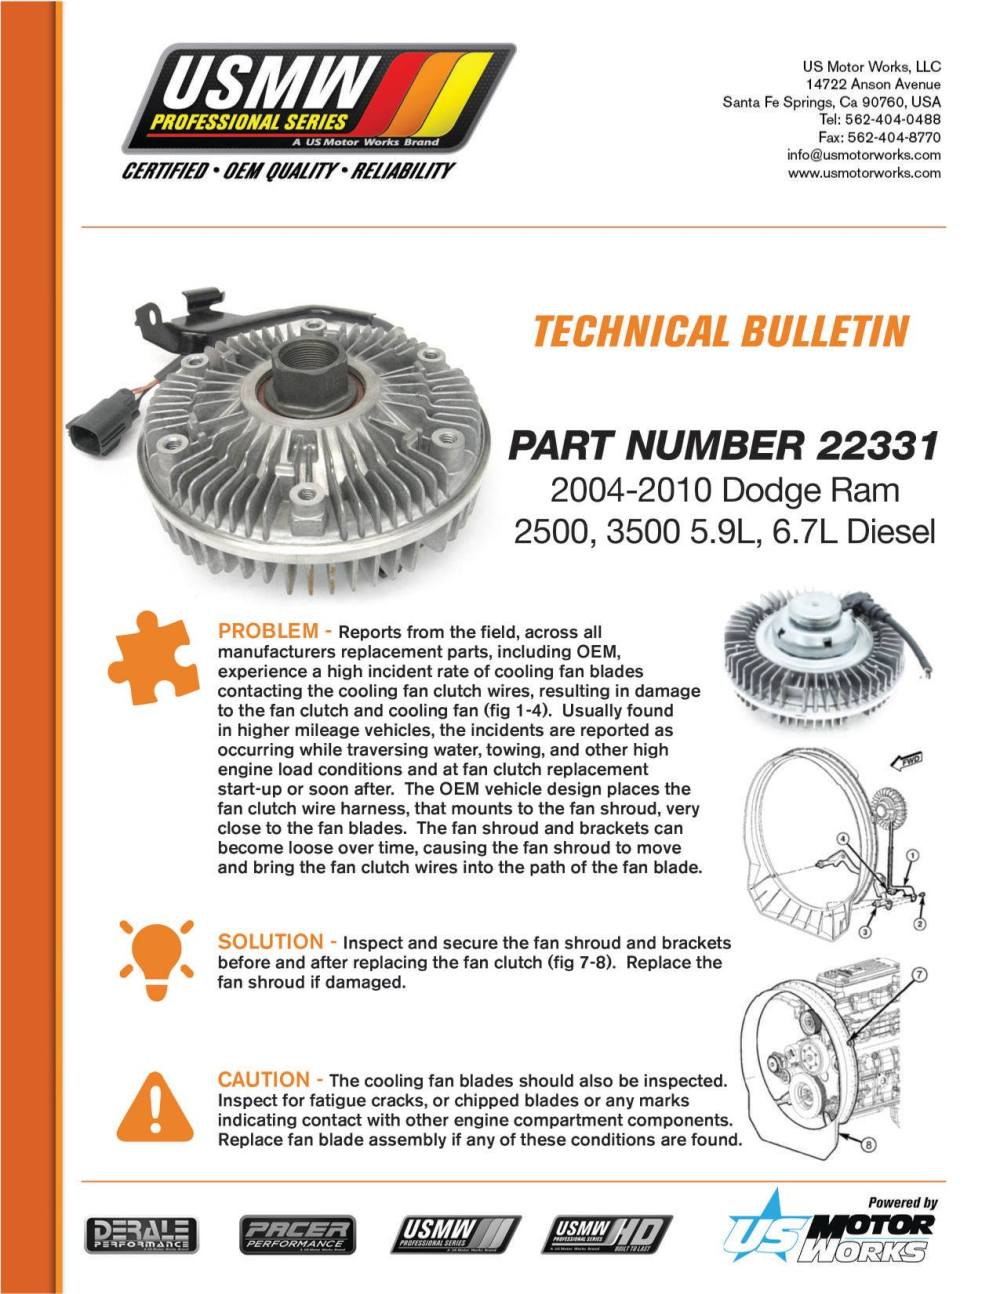 medium resolution of  of cooling fan blades contacting the cooling fan clutch wires resulting in damage to the fan clutch and cooling fan here is a quick bulletin on how to